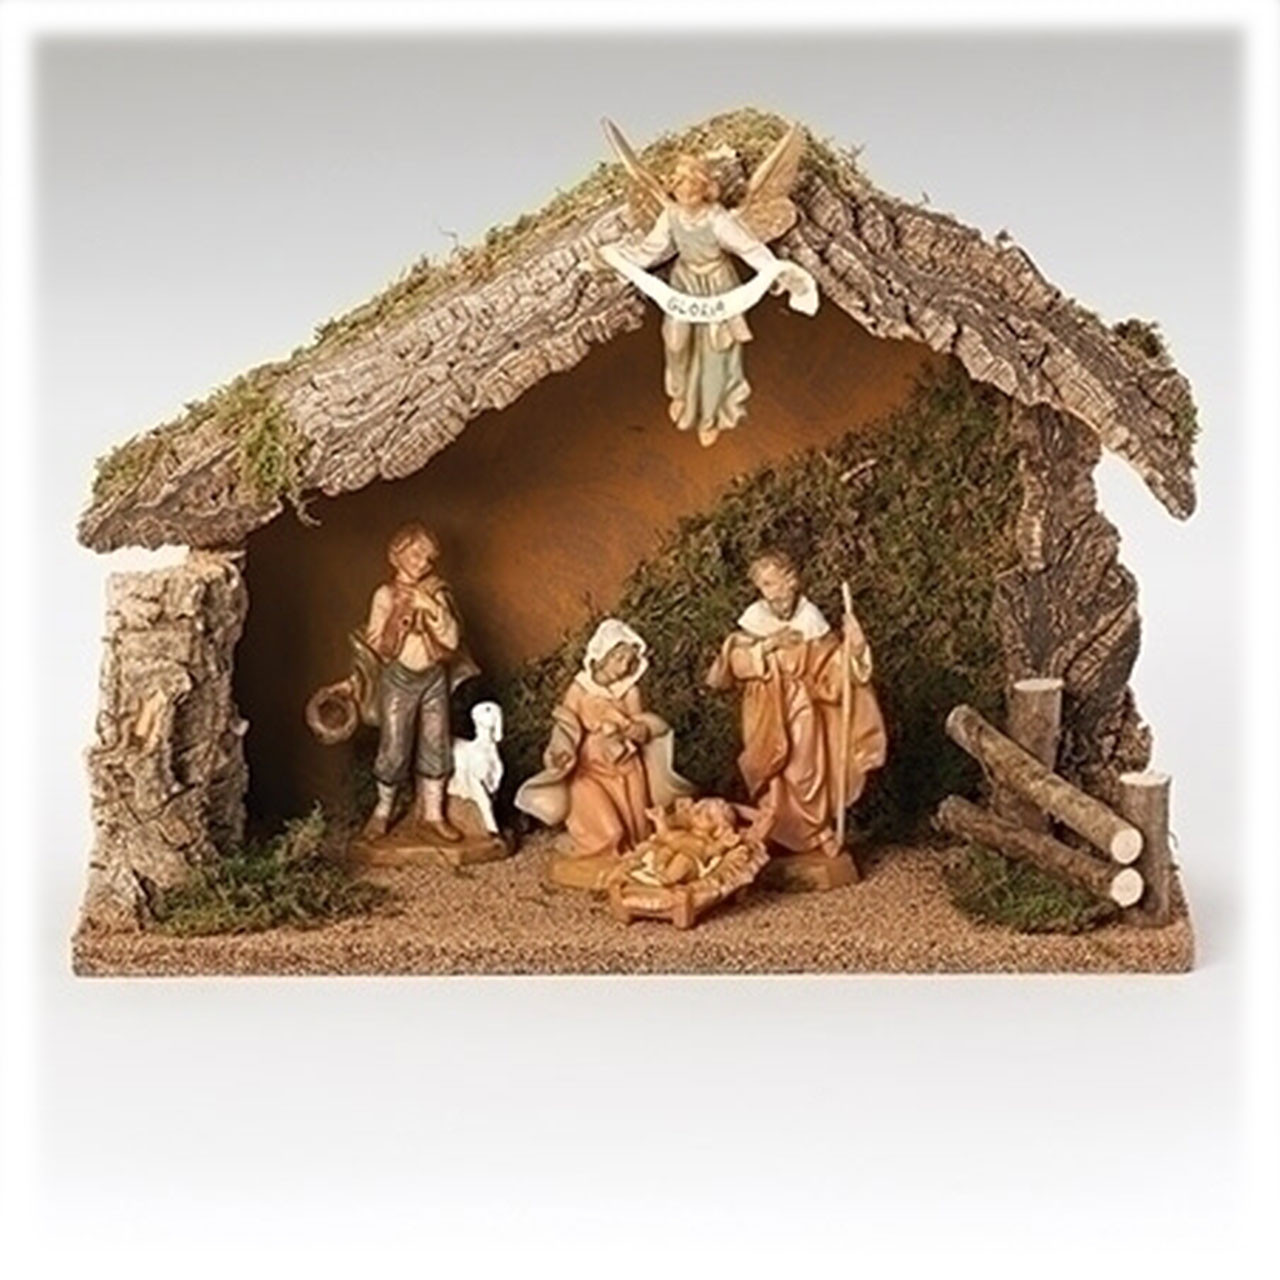 5pc Fontanini Nativity Set with Stable & Figures